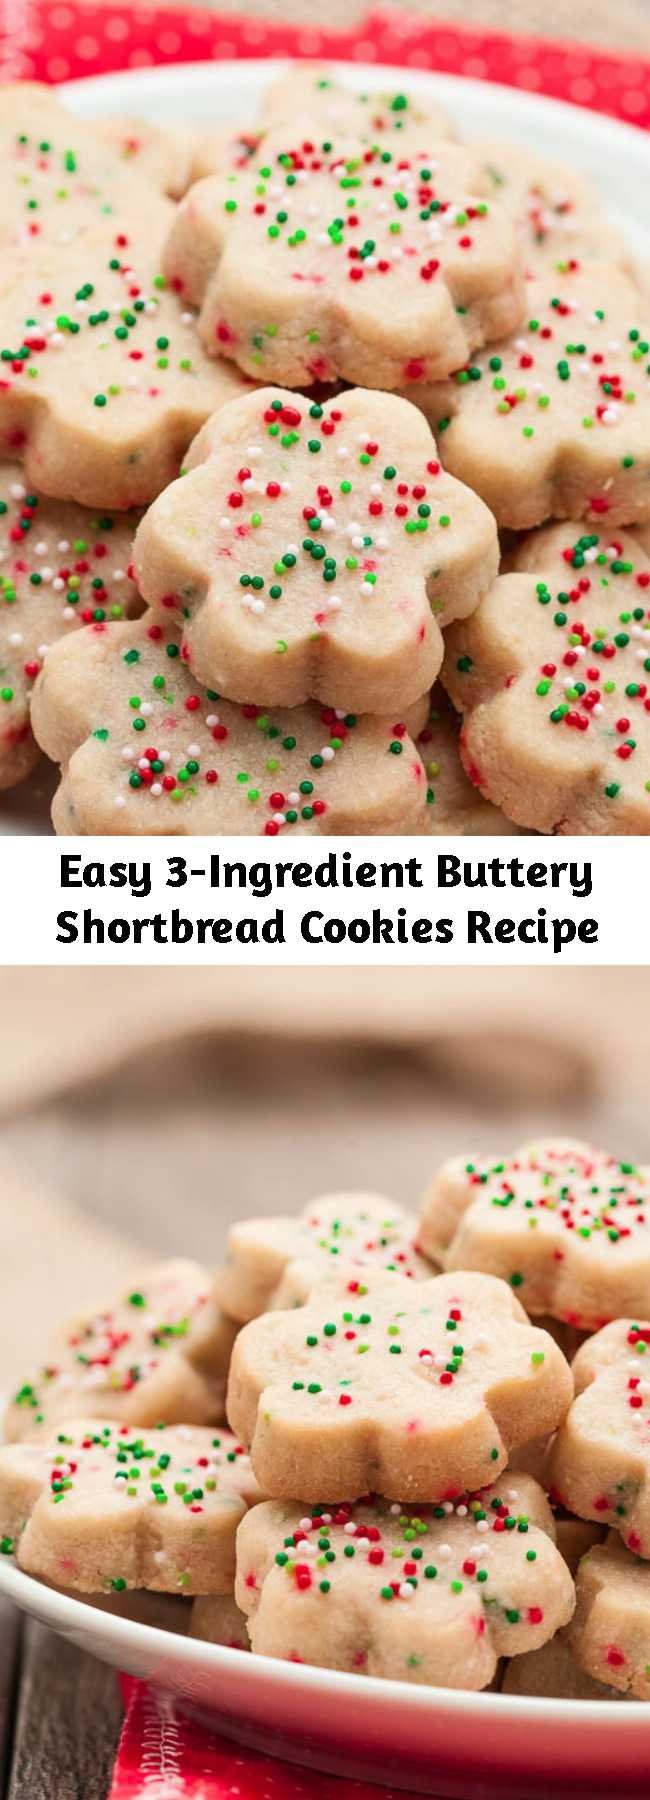 Easy 3-Ingredient Buttery Shortbread Cookies Recipe - These buttery shortbread cookies are simply divine. They are melt-in-your-mouth amazing, bursting with the goodness of butter, and easily dressed up or down. Make them, gift them, freeze them.